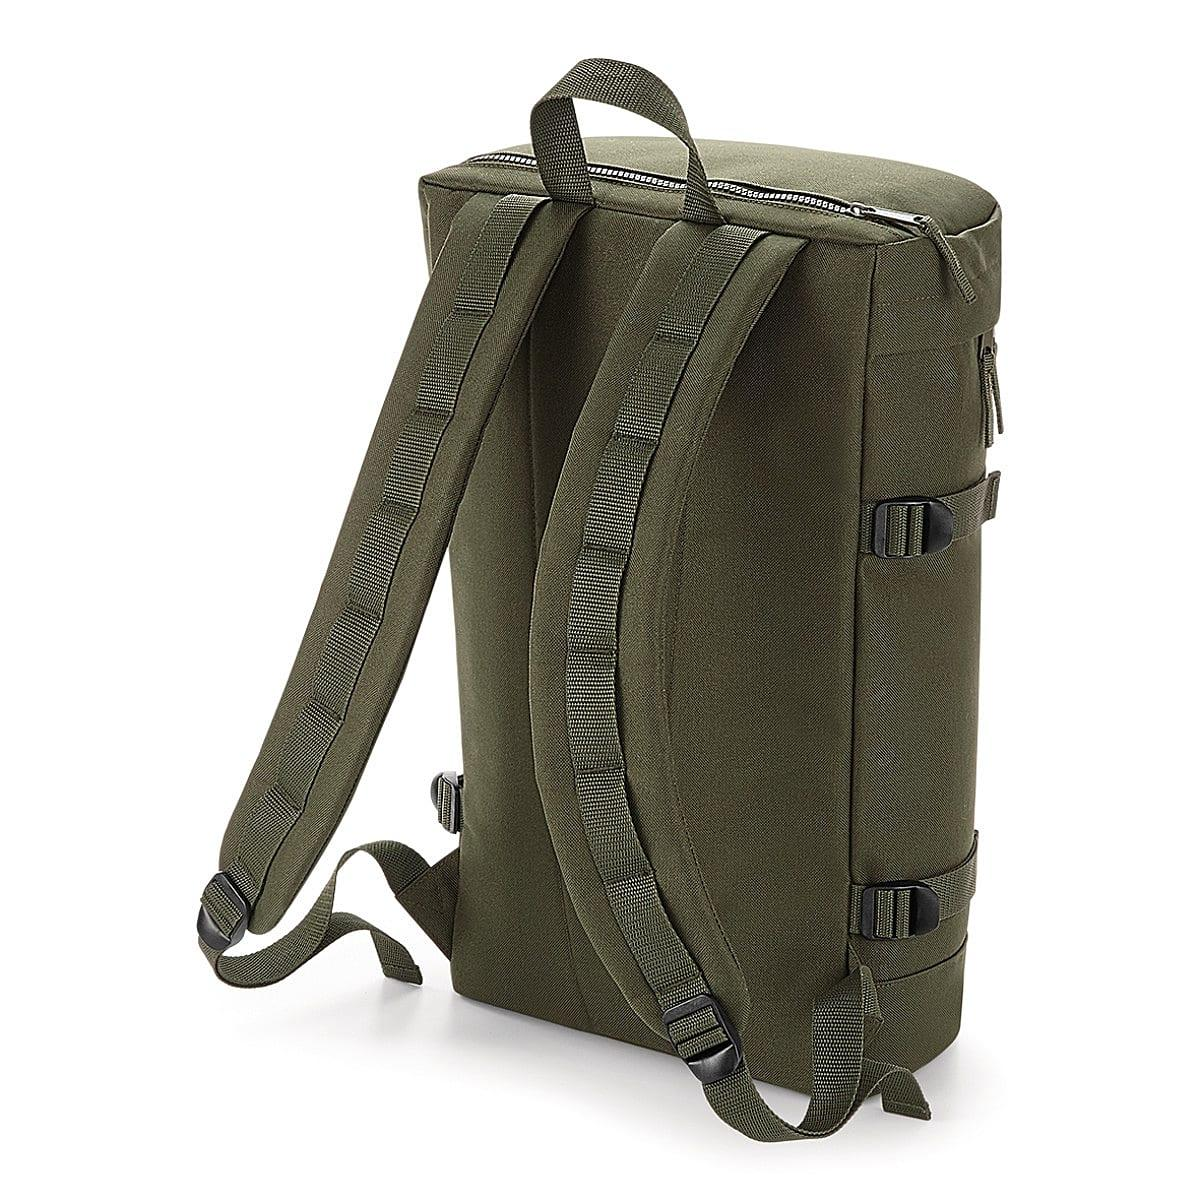 Bagbase Molle Utility Backpack in Military Green (Product Code: BG845)